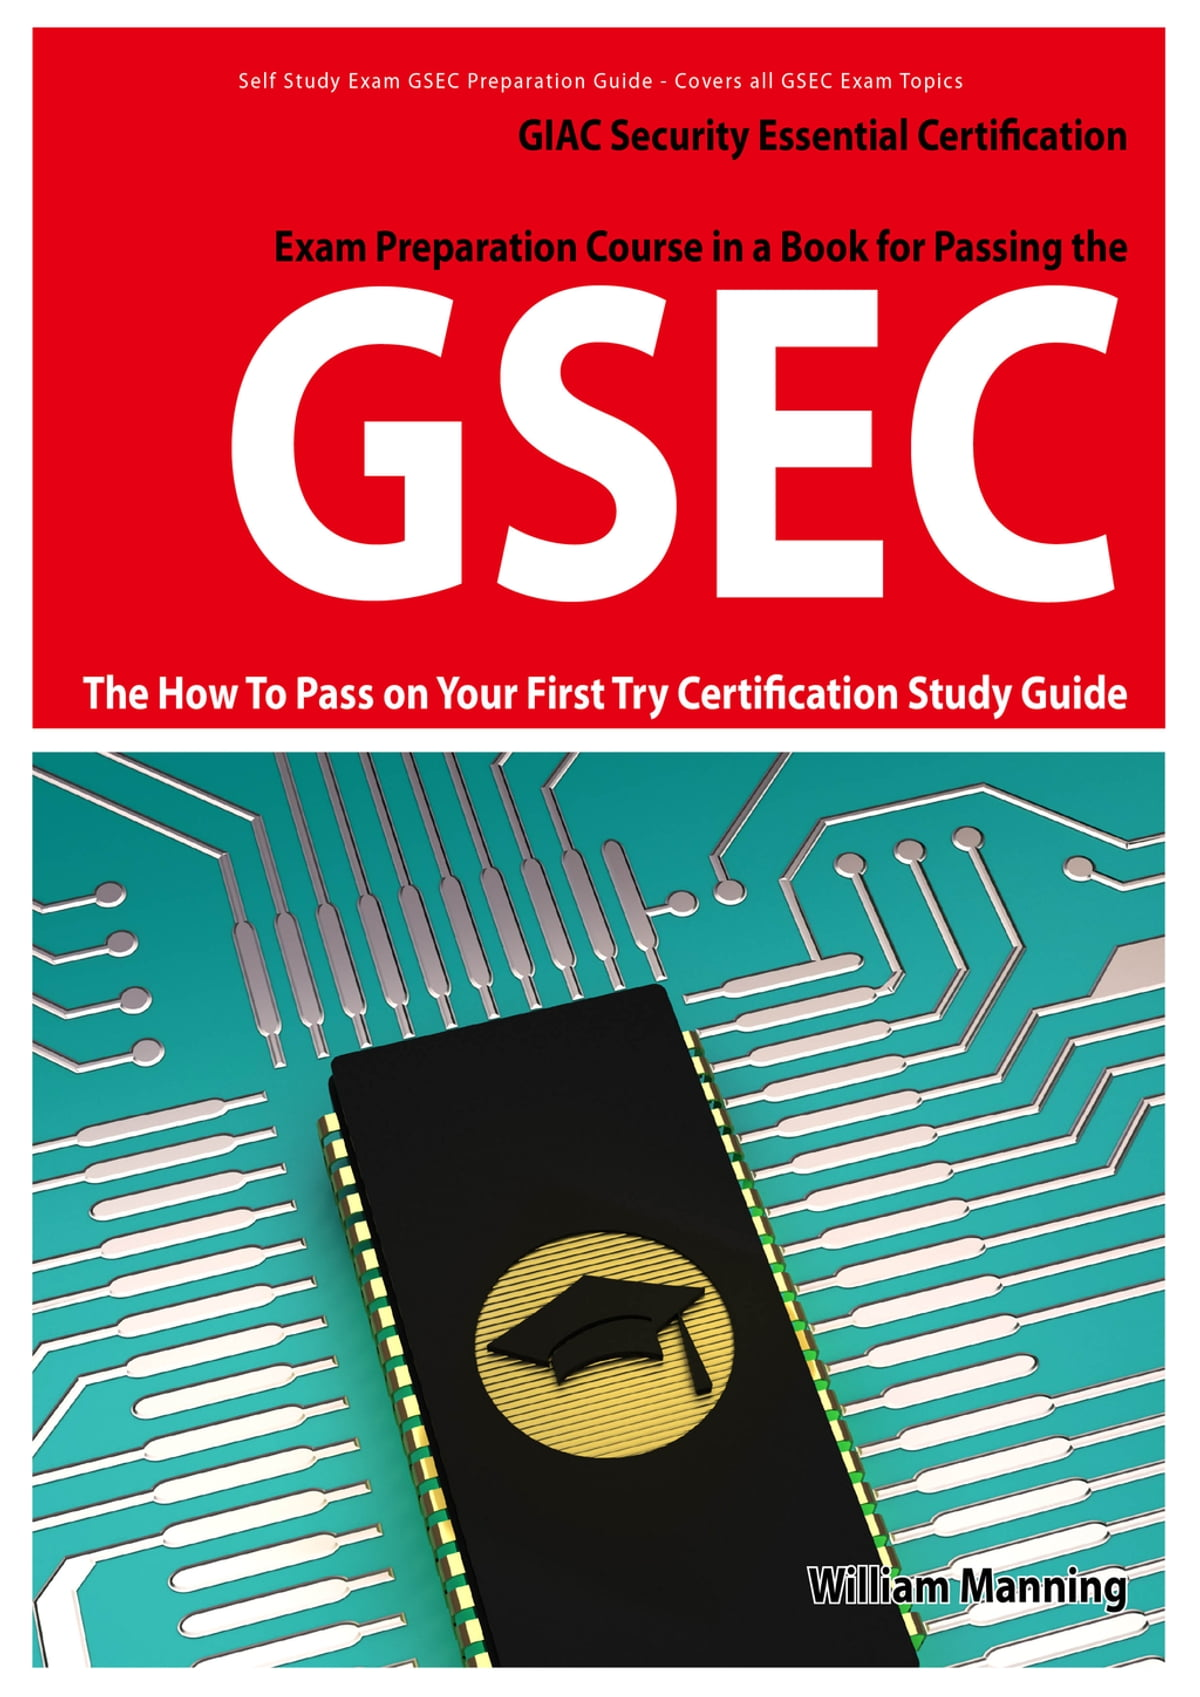 Gsec giac security essential certification exam preparation course gsec giac security essential certification exam preparation course in a book for passing the gsec certified exam the how to pass on your first try xflitez Images